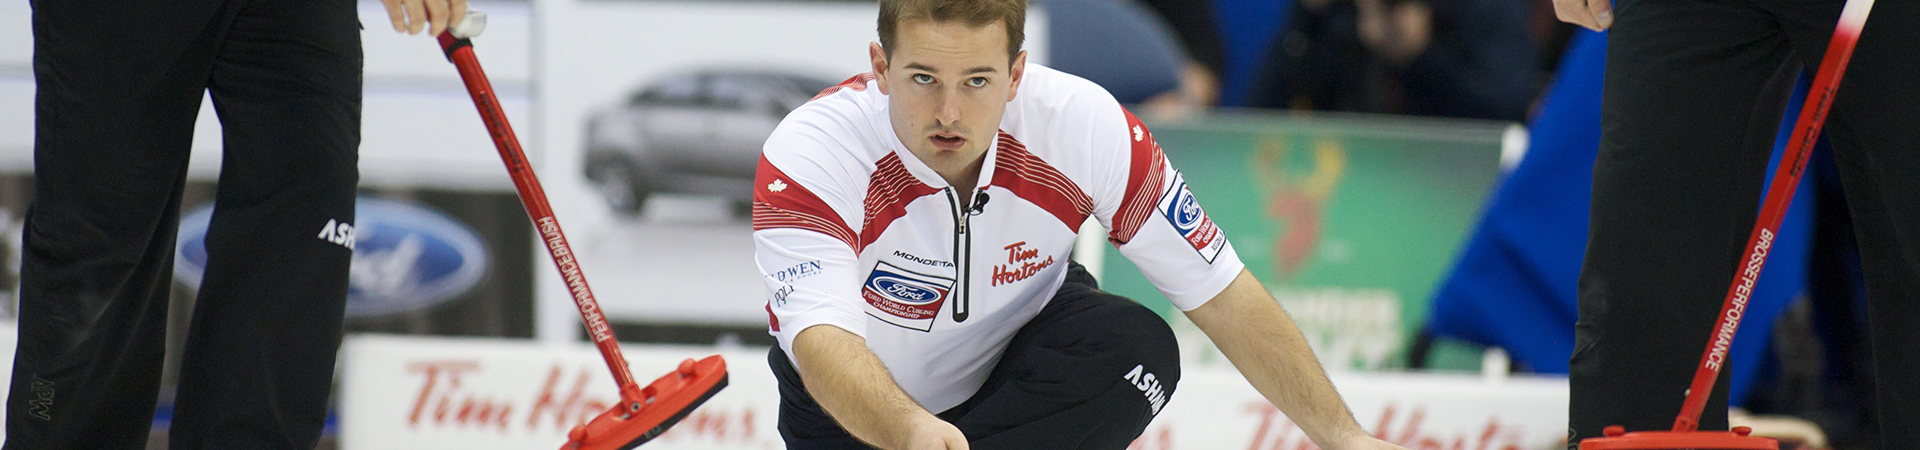 Curling Reid Carruthers